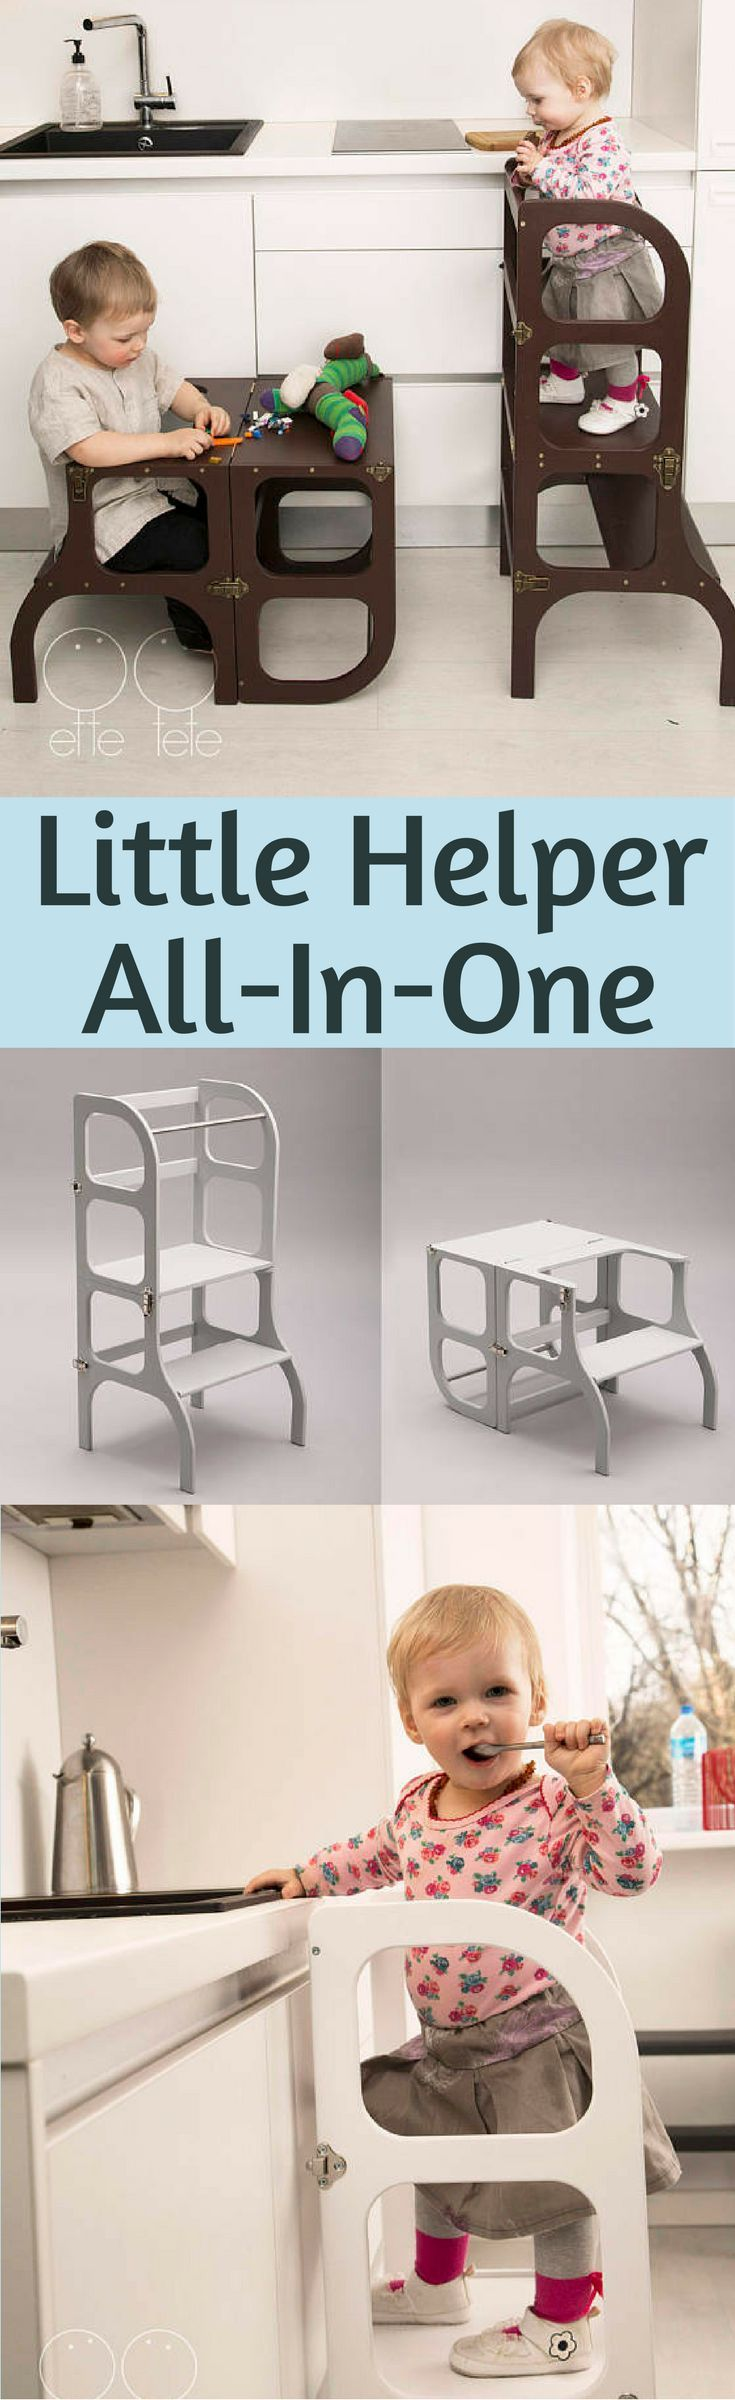 Amazing Ideas To Make Life Easier Convertible Toddler Safety Stool And Toddler Activity Table Toddler Table A Toddler Boy Gifts Diy Kids Chair Diy Kids Table